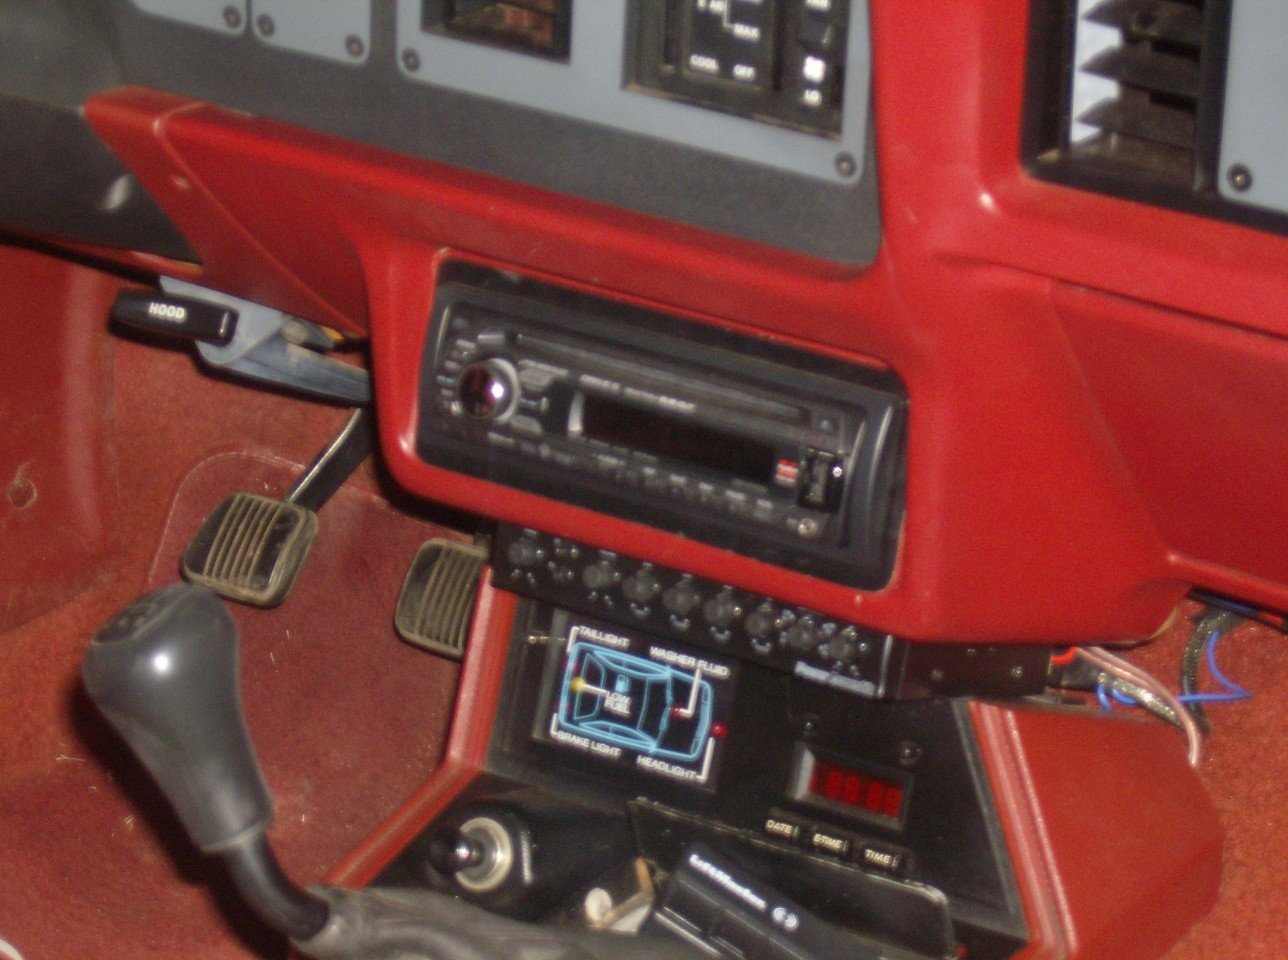 [SCHEMATICS_4ER]  1986 Mustang stereo installation | Ford Mustang Forum | 1986 Ford Mustang Stereo Wiring |  | All Ford Mustangs